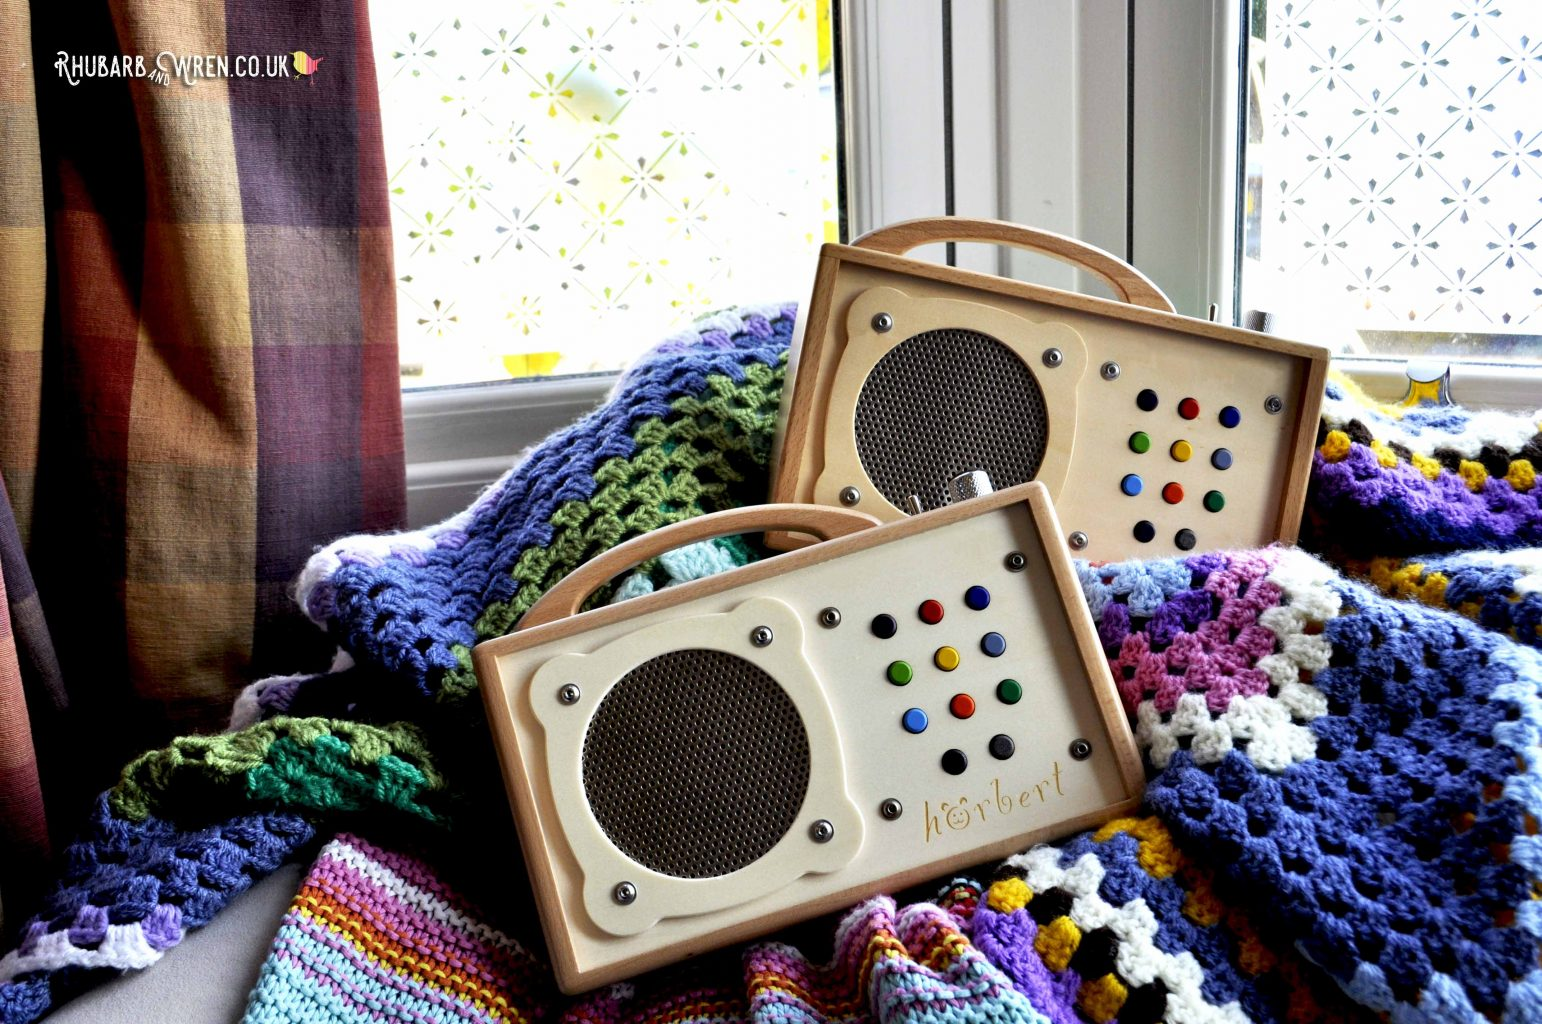 two wooden 'horbert' mp3 players.